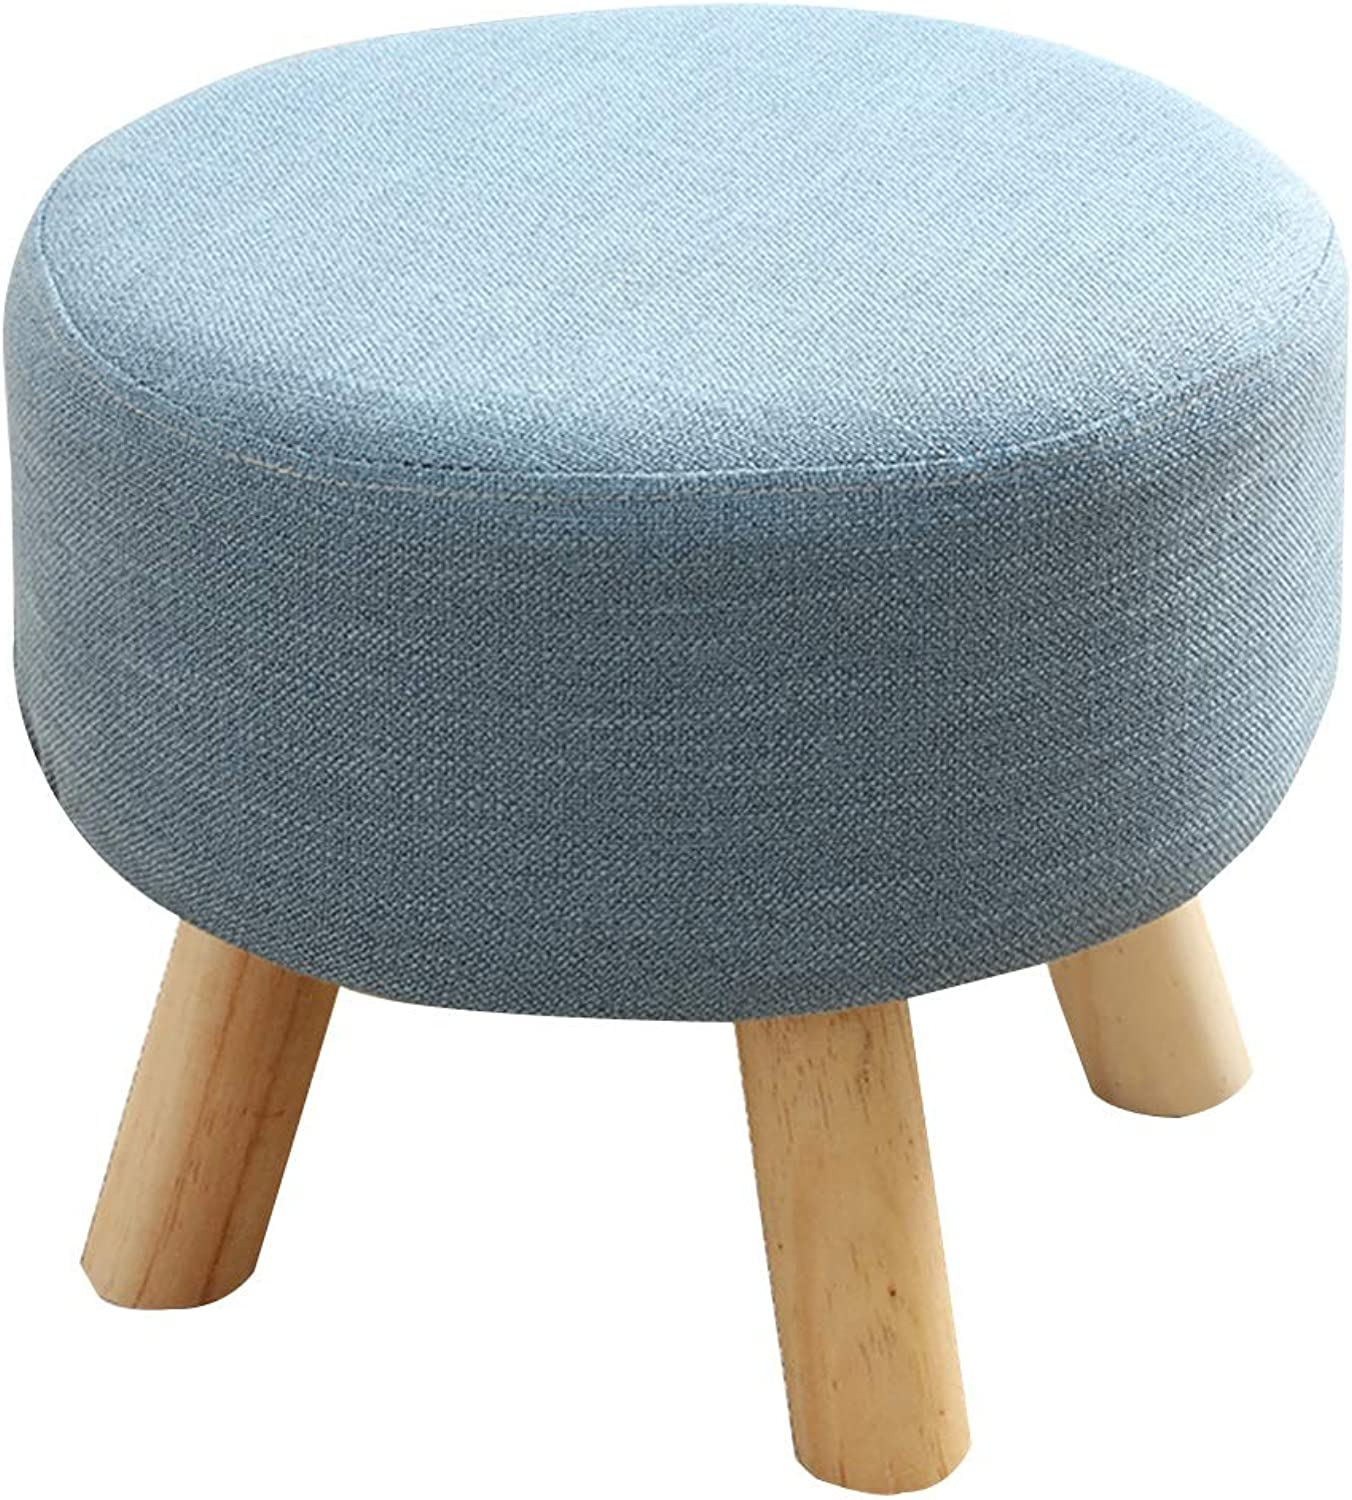 LSXIAO Sofa Stool Framework Solid Wood Leg Stool Doorway Change shoes Cloth Soft Comfortable Modern Simplicity, 4 colors (color   bluee, Size   40X40X32CM)